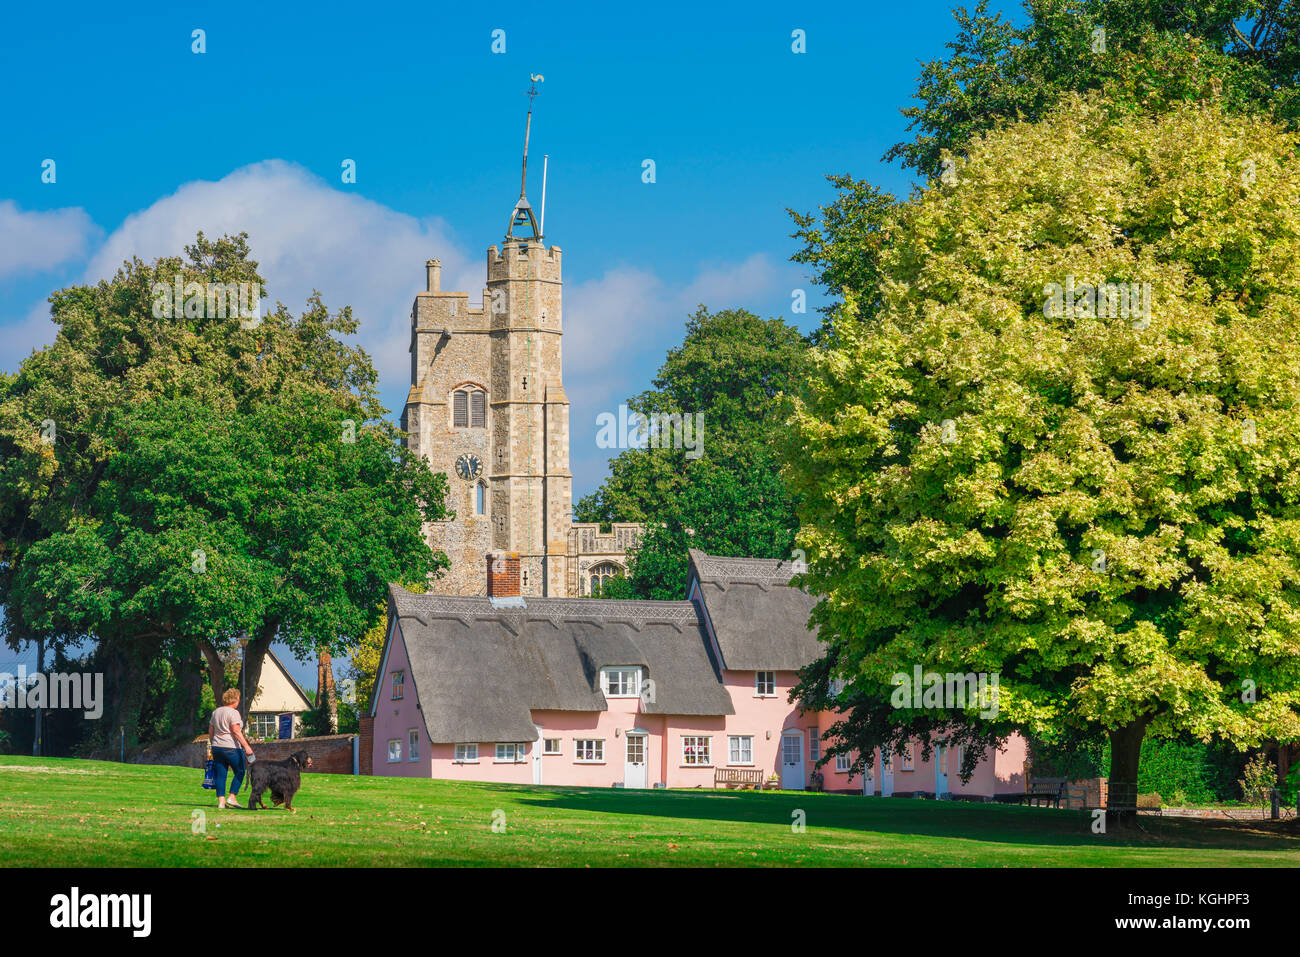 Cavendish Suffolk, the village green in Cavendish with church tower and group of traditional pink cottages, Suffolk, - Stock Image